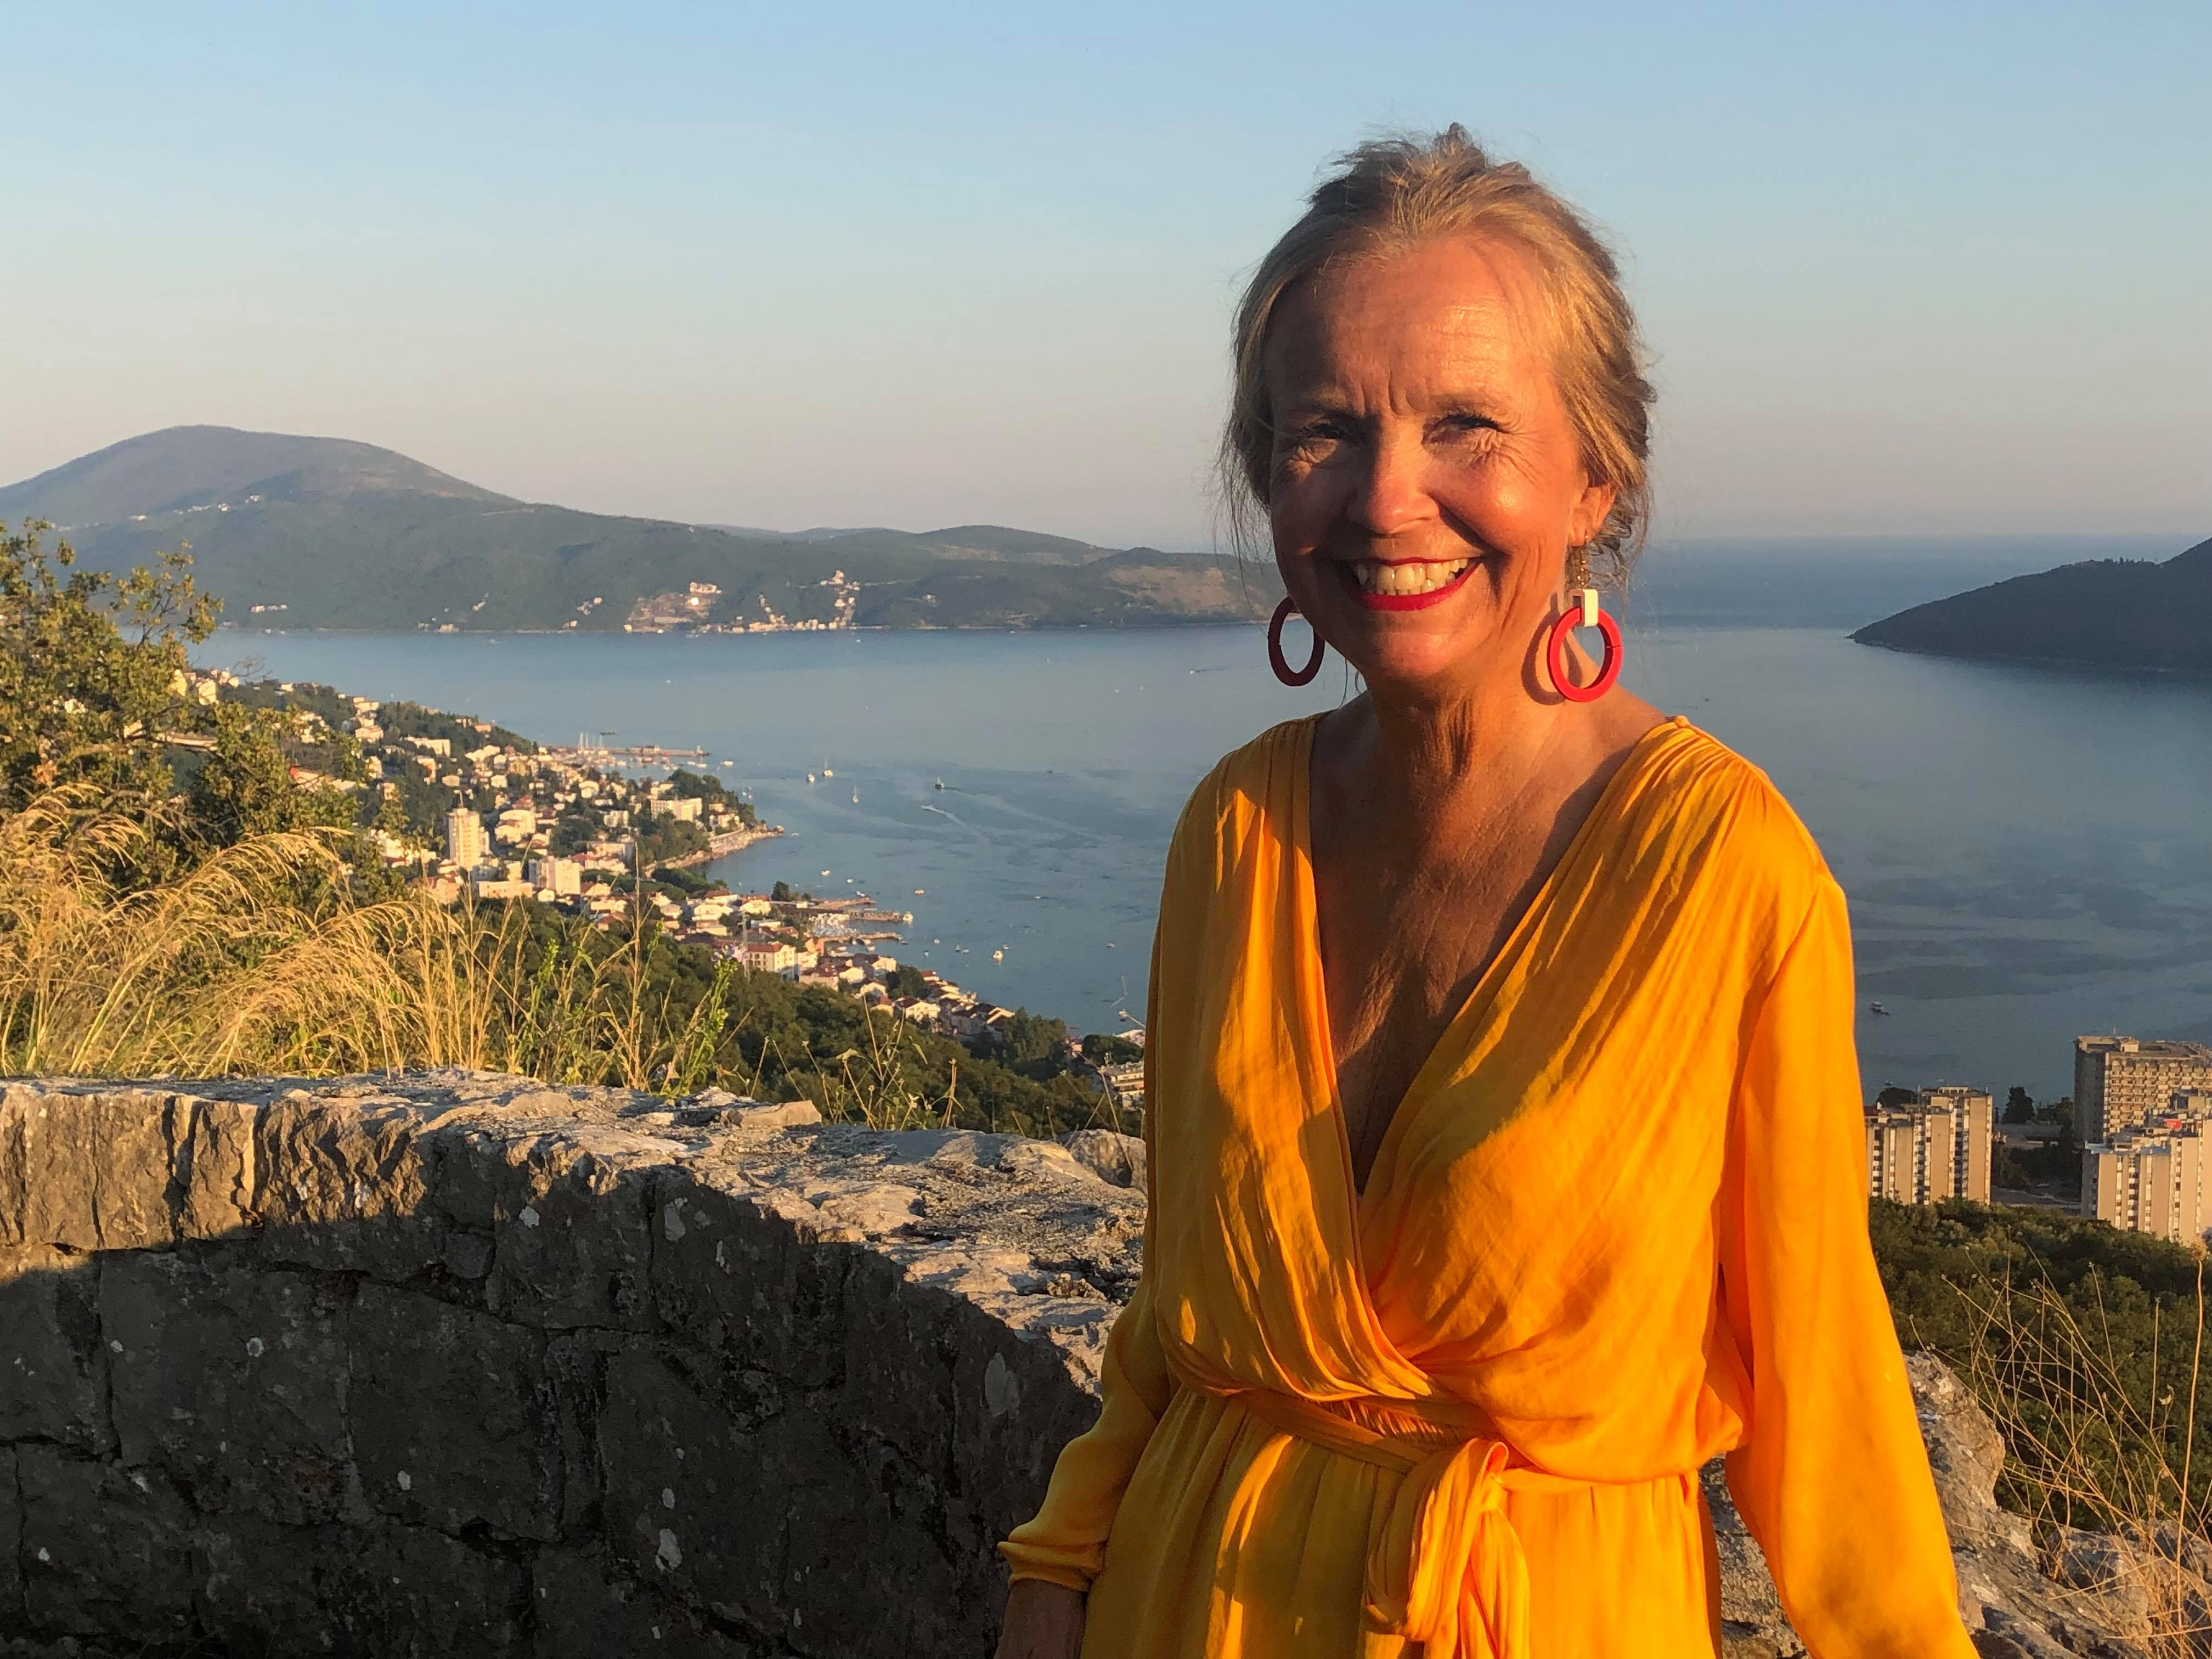 Spiritual Healer Silja Winther Announces Digital Course on Meditation for Self-Healing